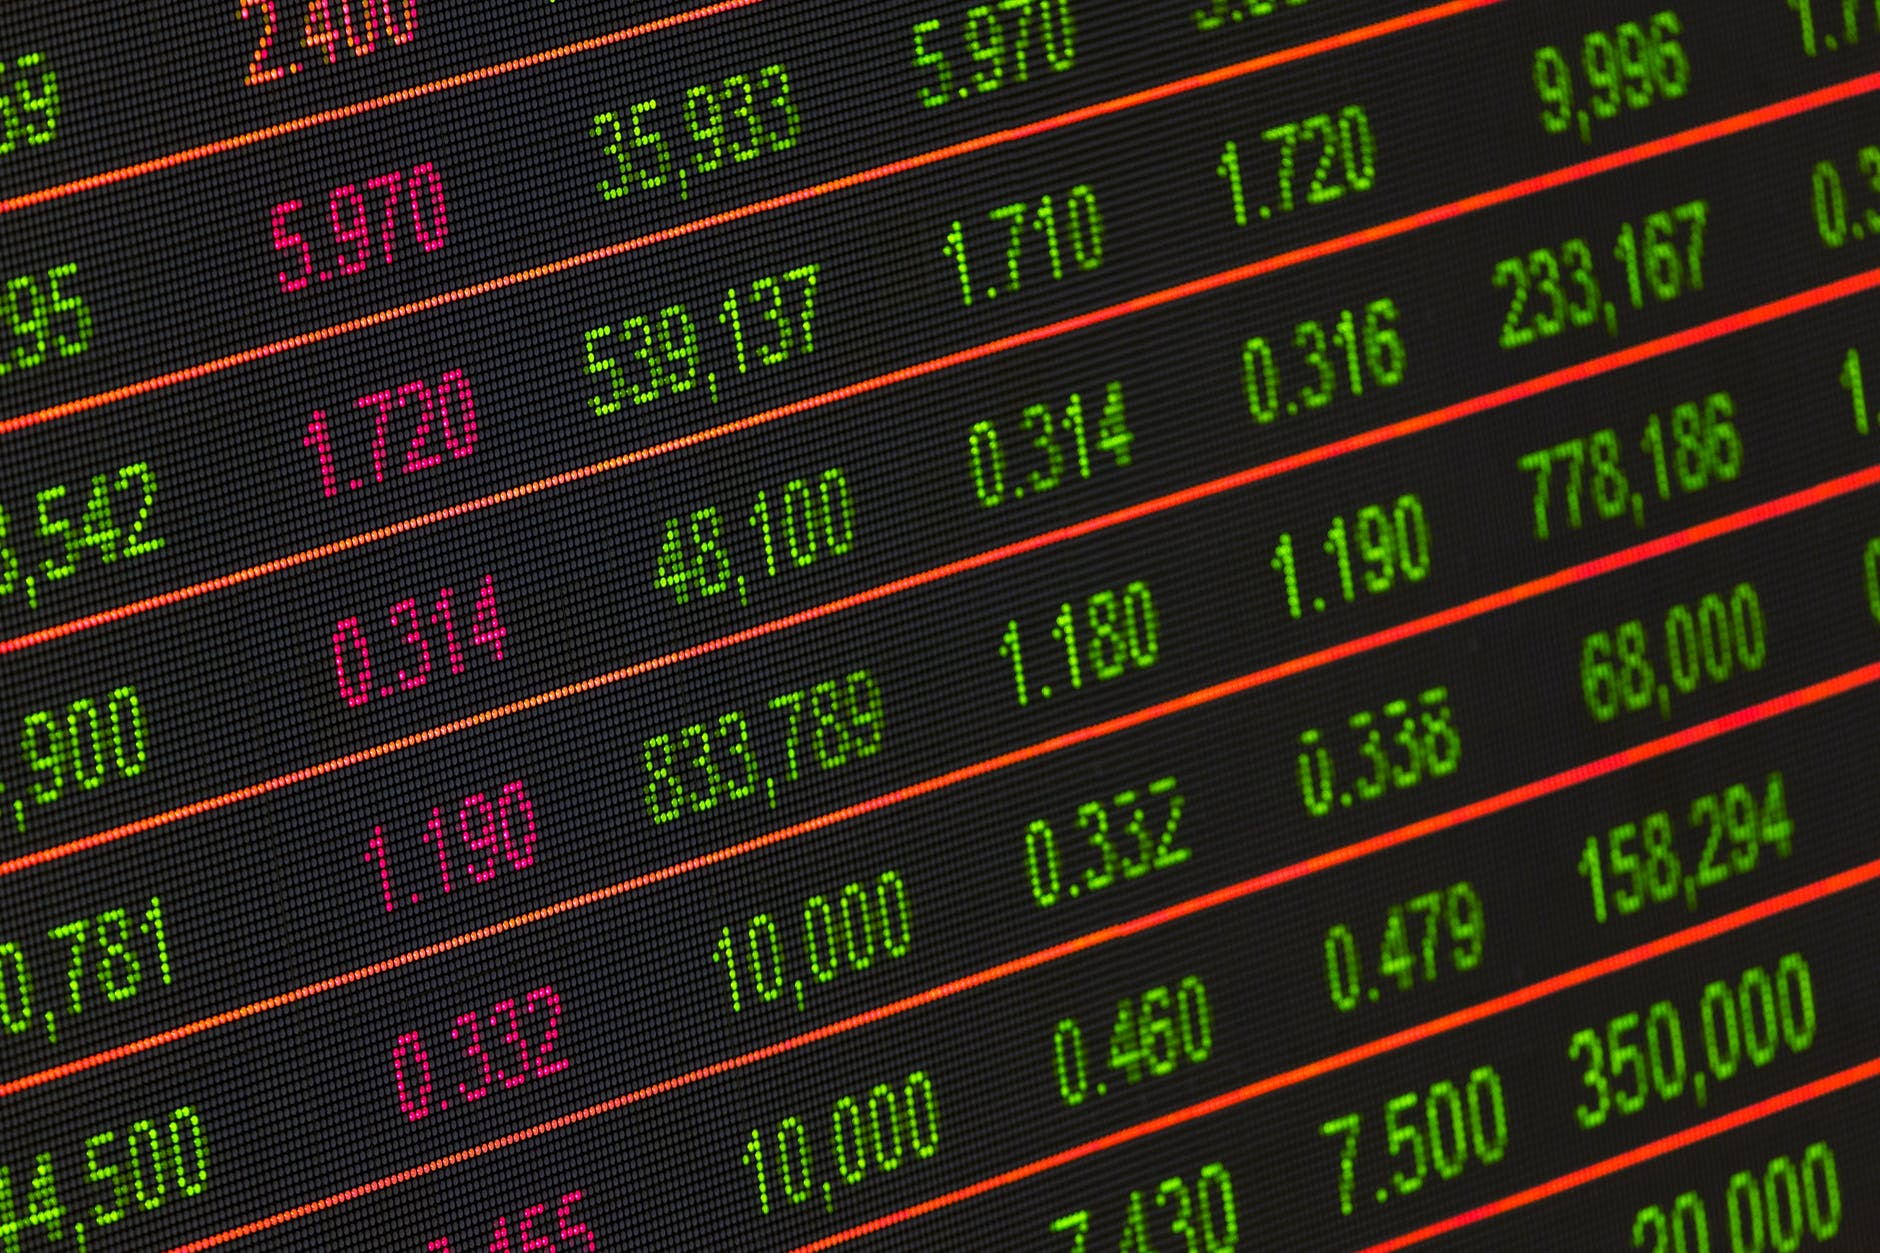 A stock exchange board.